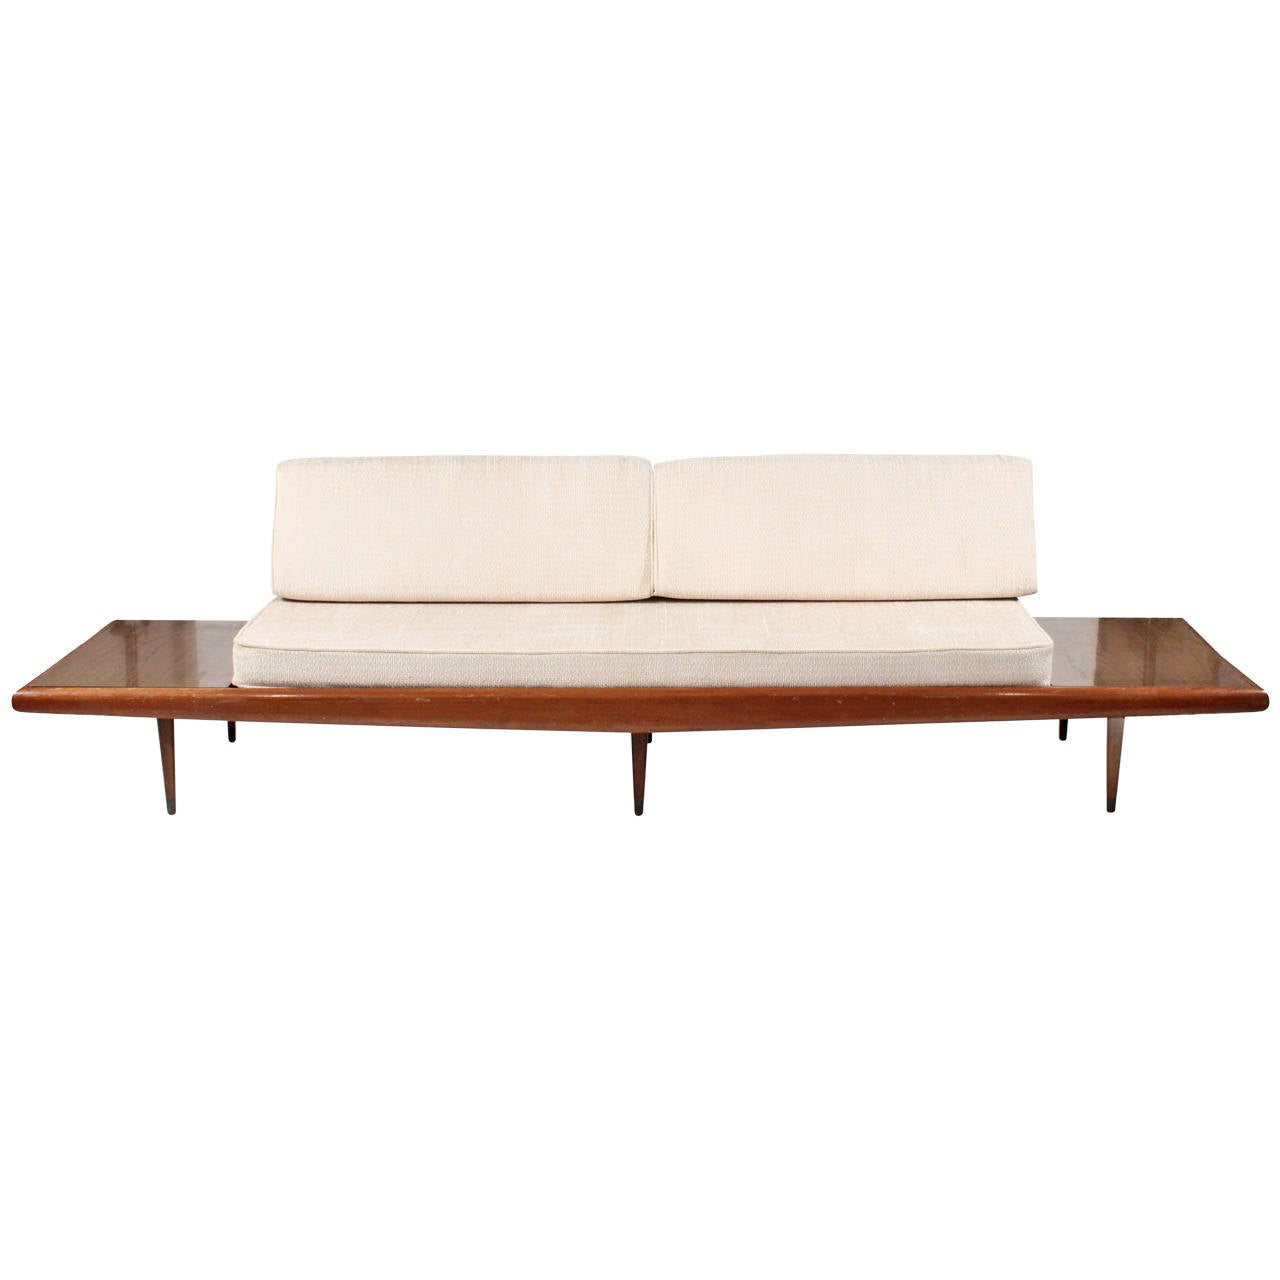 Adrian Pearsall Daybed Sofa At 1stdibs